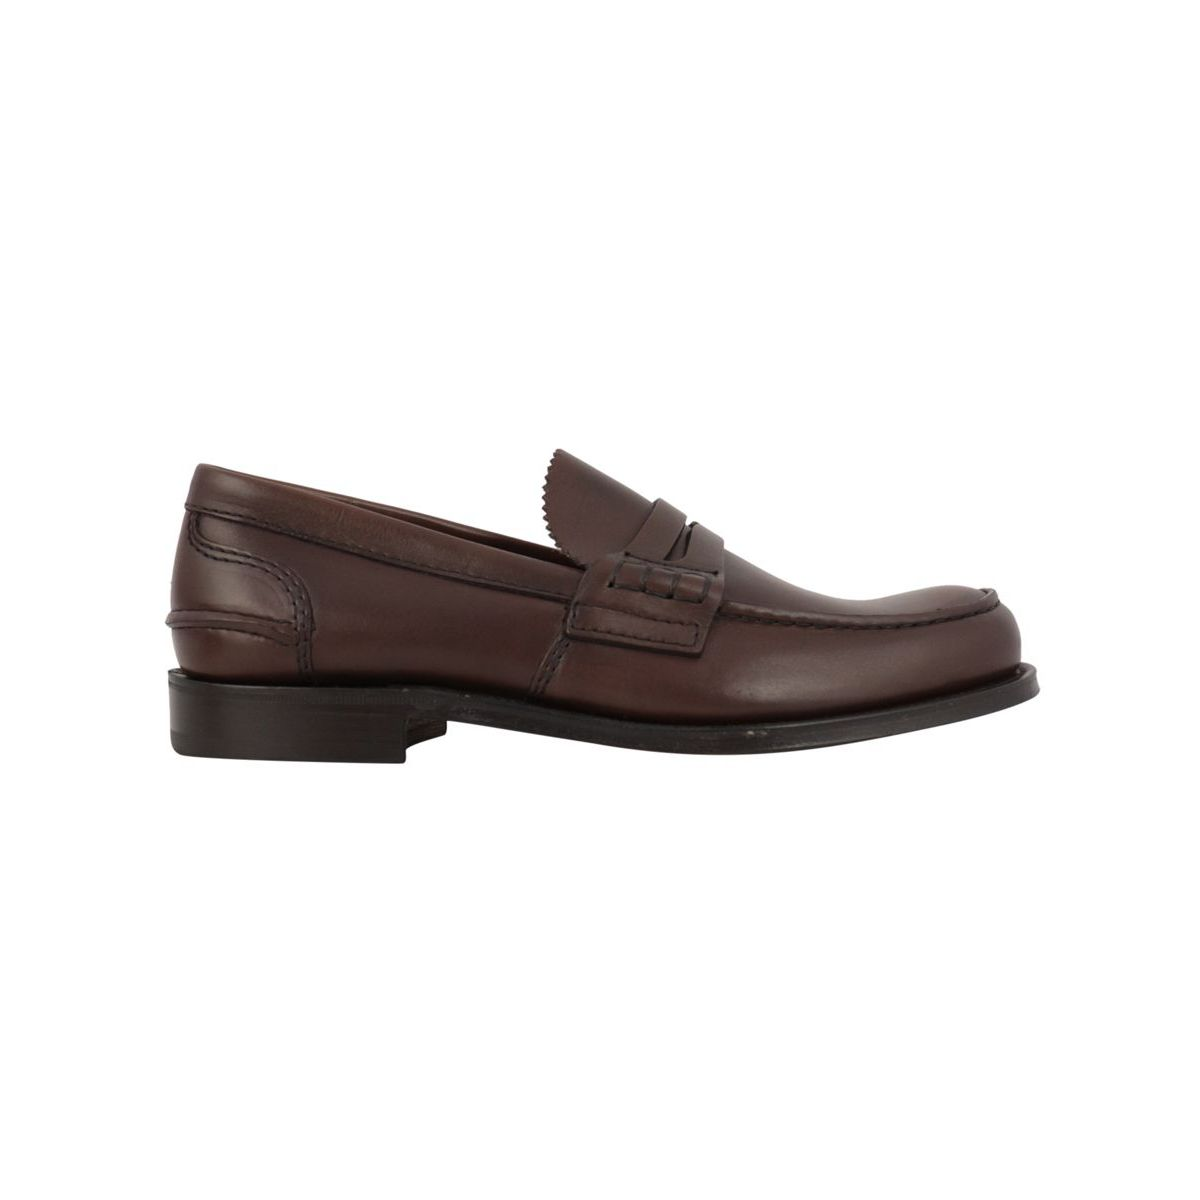 PEMBREY leather moccasin Cognac Church's